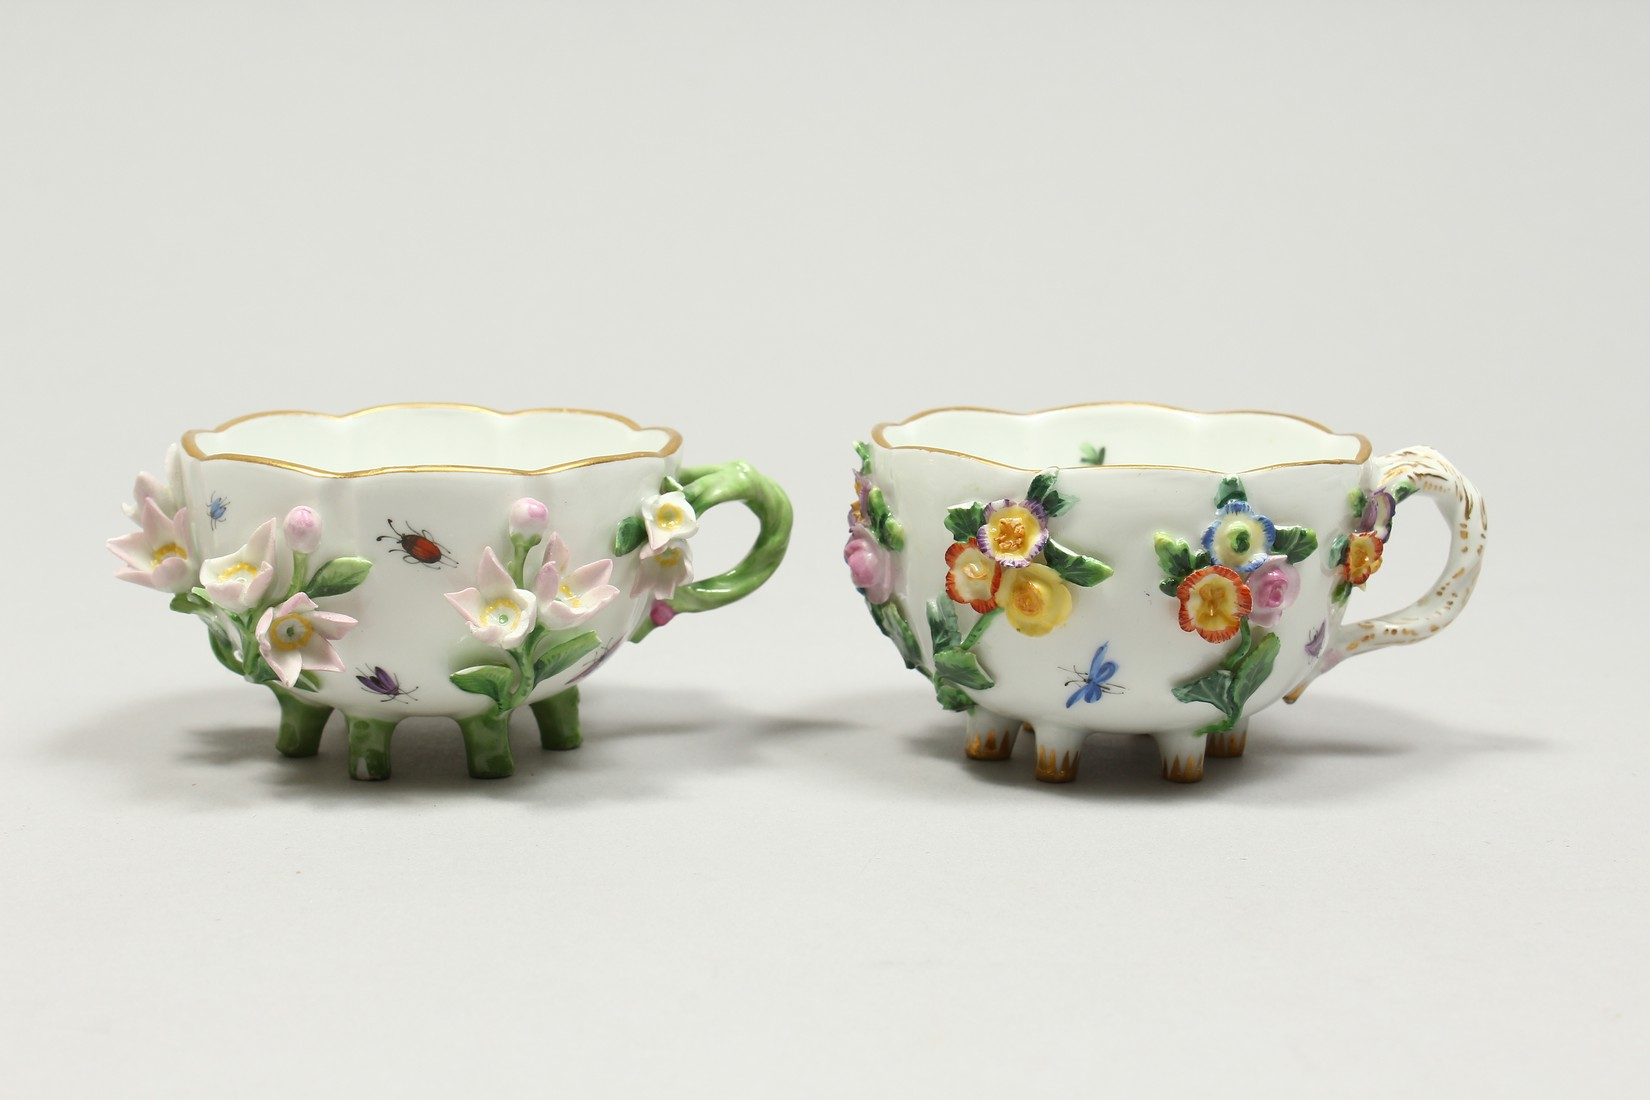 TWO MEISSEN PORCELAIN CUPS AND SAUCERS AND A SAUCER, encrusted with flowers and painted with - Image 4 of 16